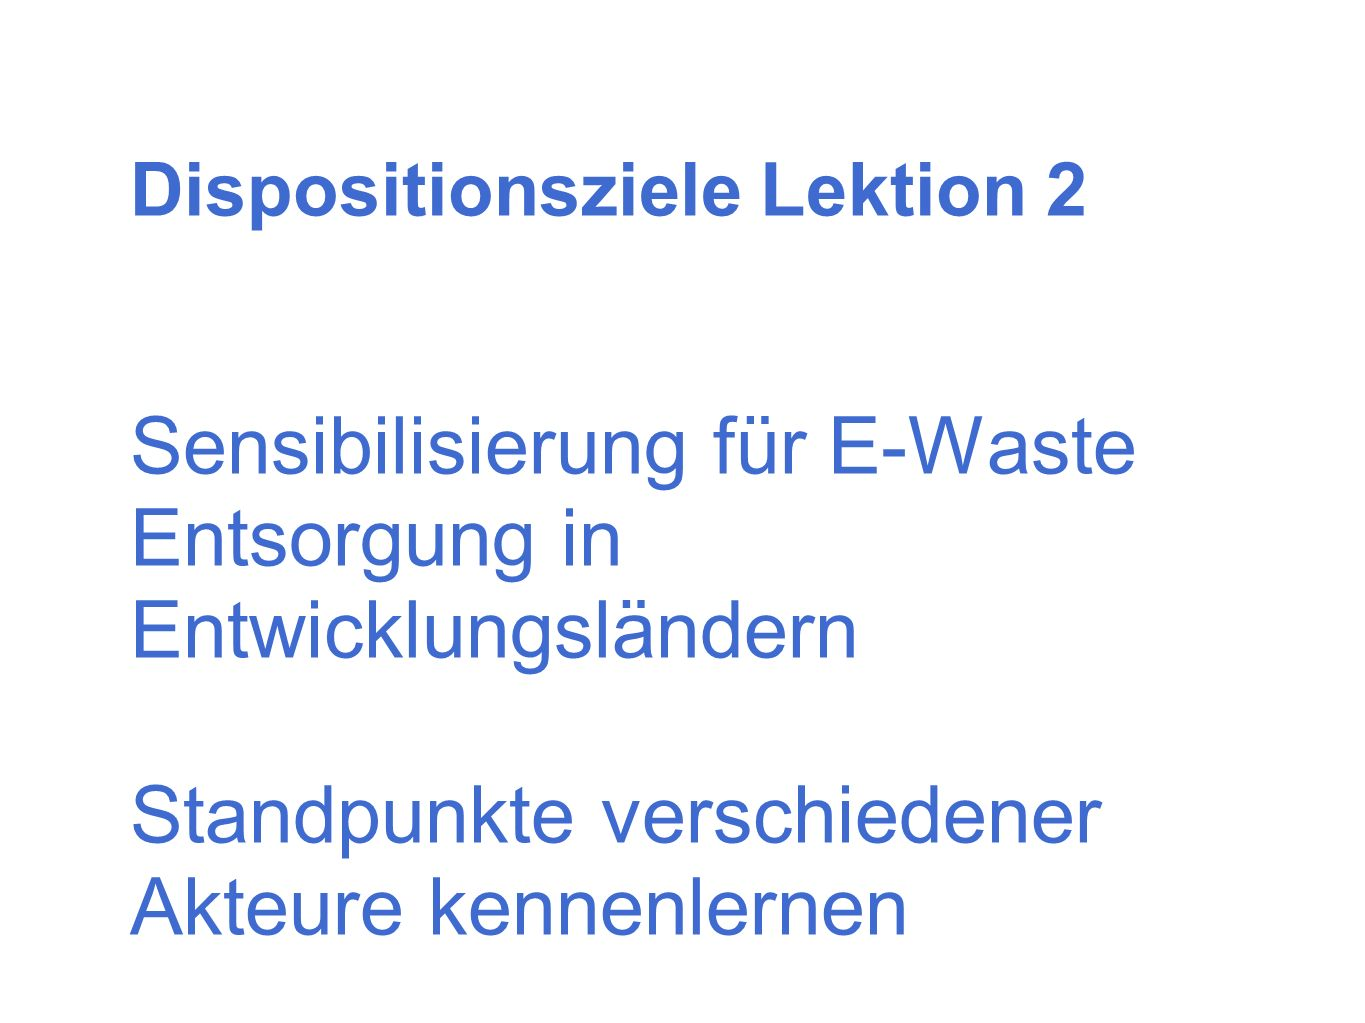 Dispositionsziele Lektion 2